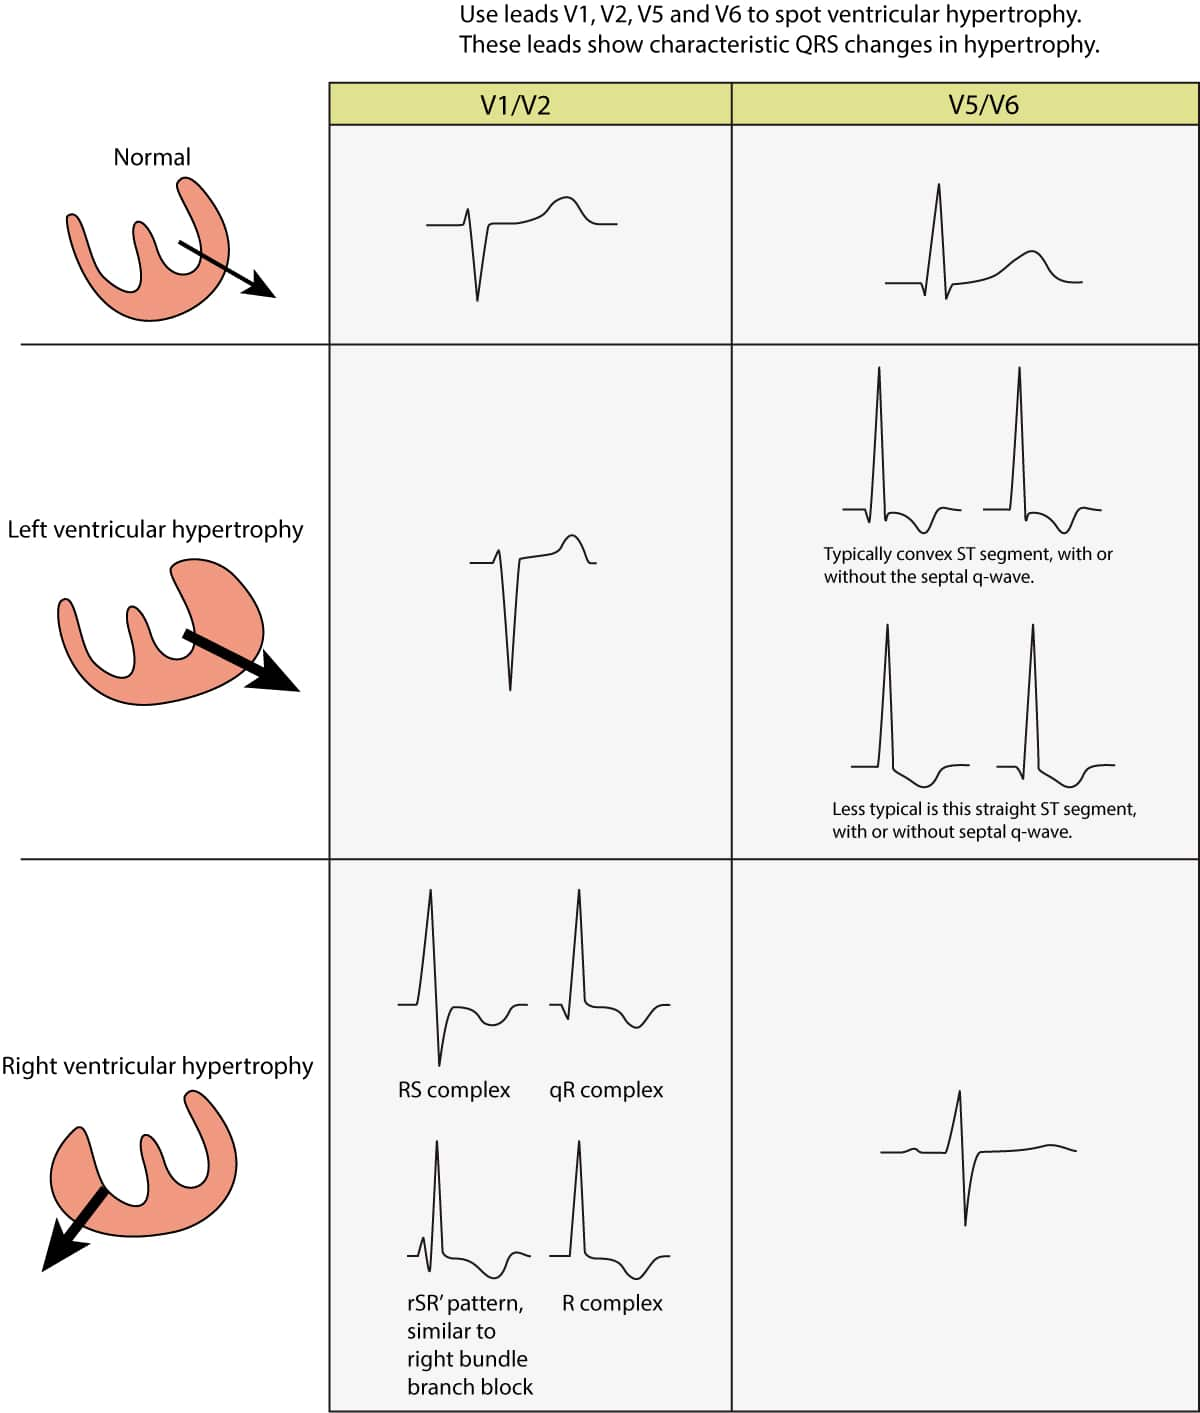 Figure 1. ECG changes seen in left ventricular hypertrophy (LVH) and right ventricular hypertrophy (RVH). The electrical vector of the left ventricle is enhanced in LVH, which results in large R-waves in left sided leads (V5, V6, aVL and I) and deep S-waves in right sided chest leads (V1, V2). Right ventricular hypertrophy causes large R-waves in right sided chest leads and deeper S-waves in left sided leads.